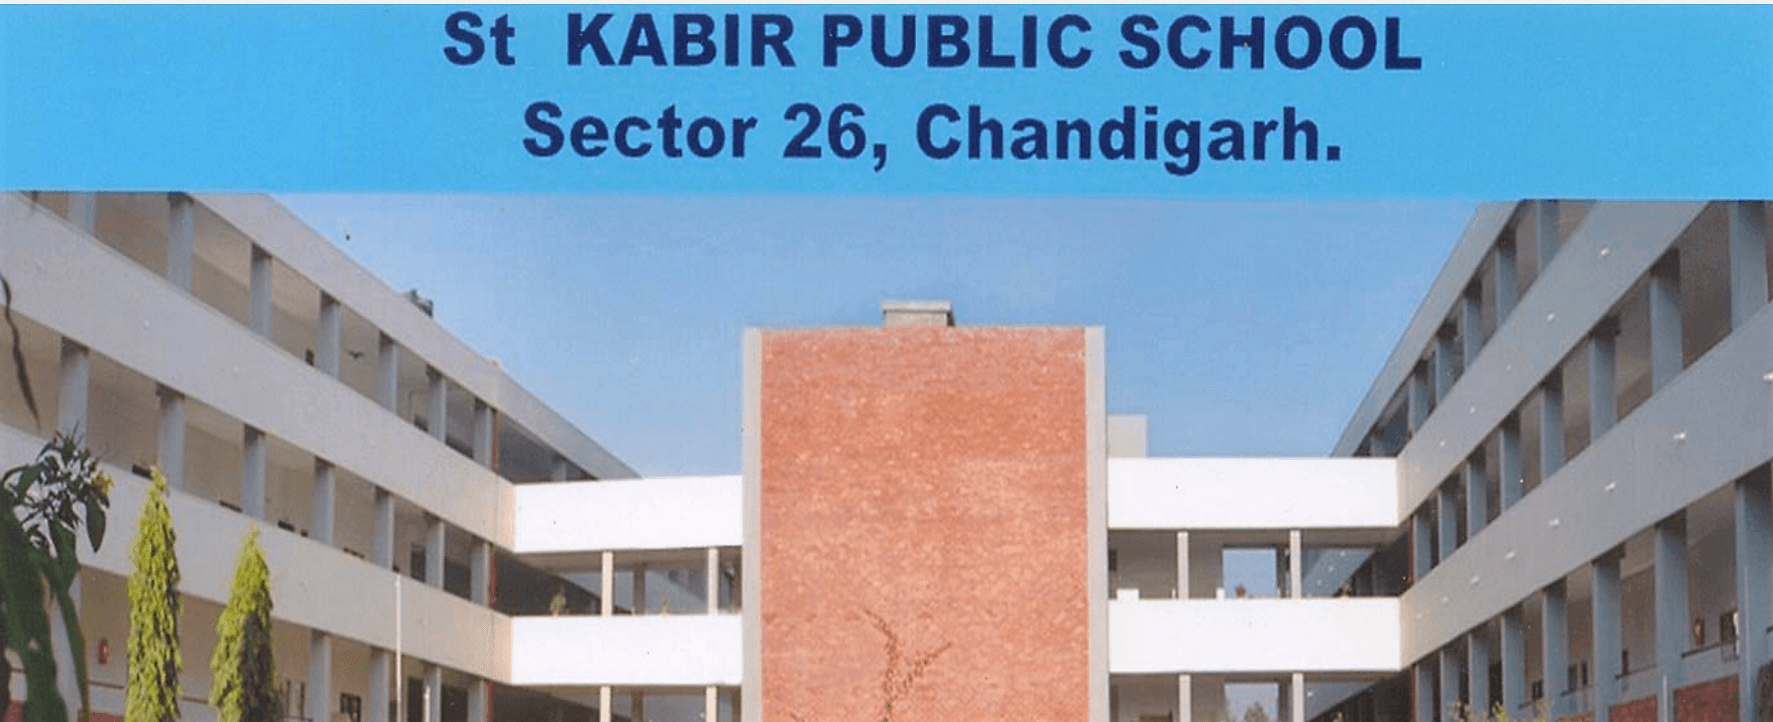 Most-Popular-Schools-In-Chandigarh